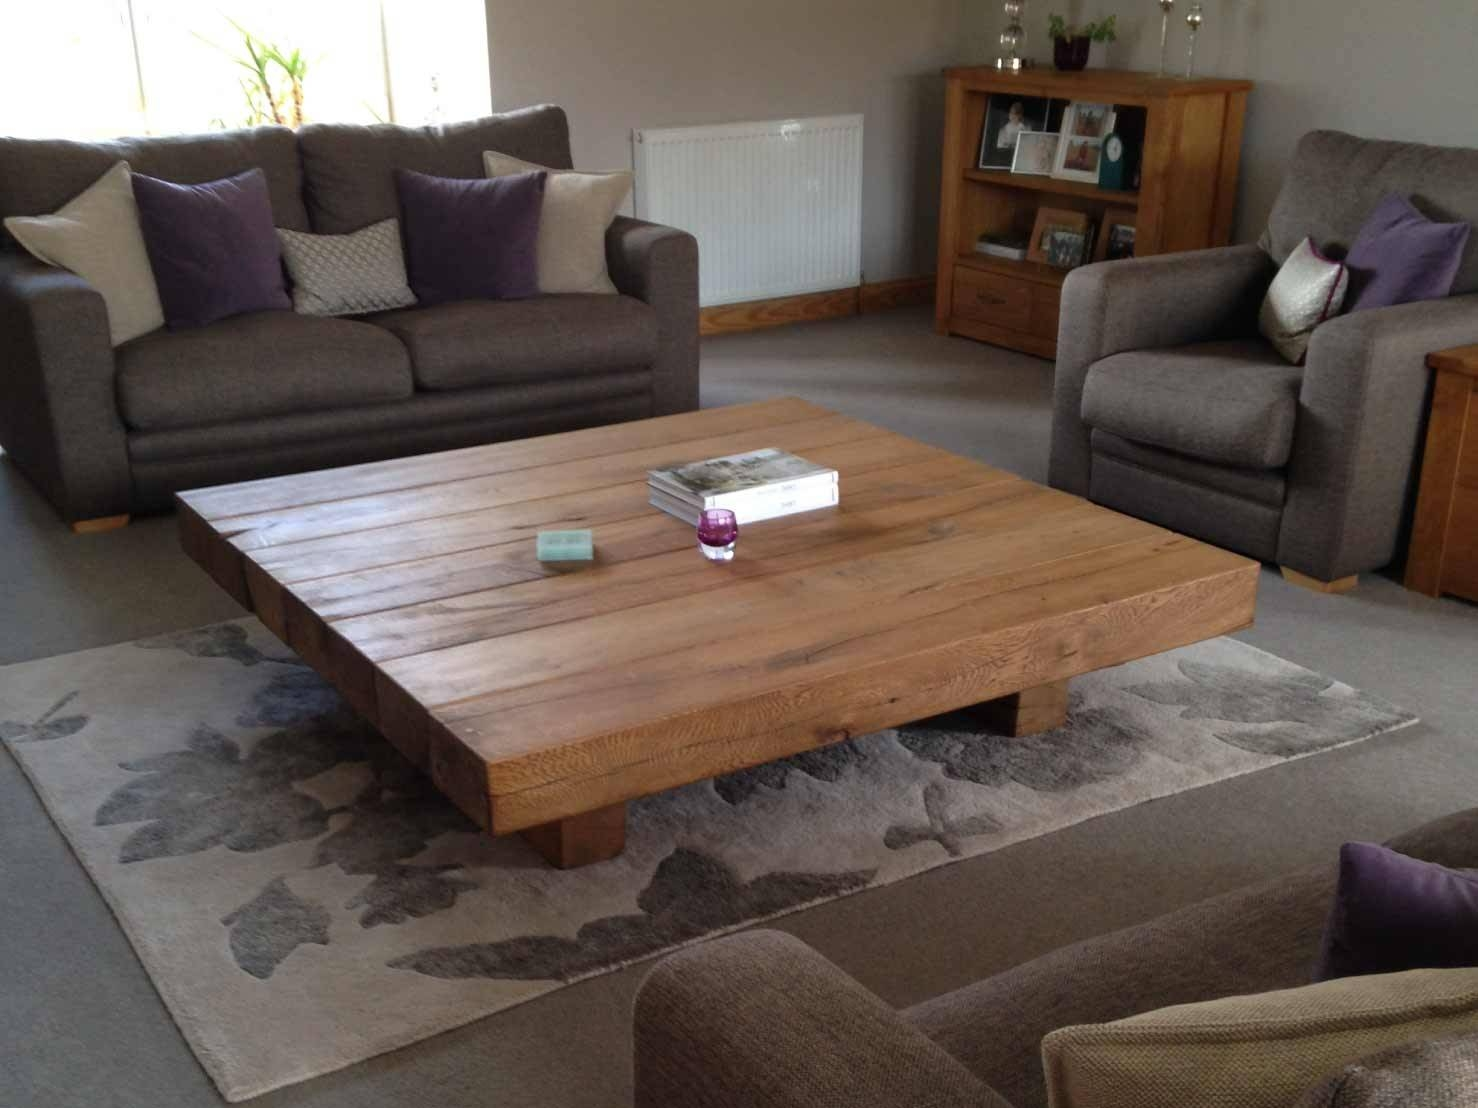 Large Low Coffee Table | Abacus Tables regarding Large Low Coffee Tables (Image 11 of 15)